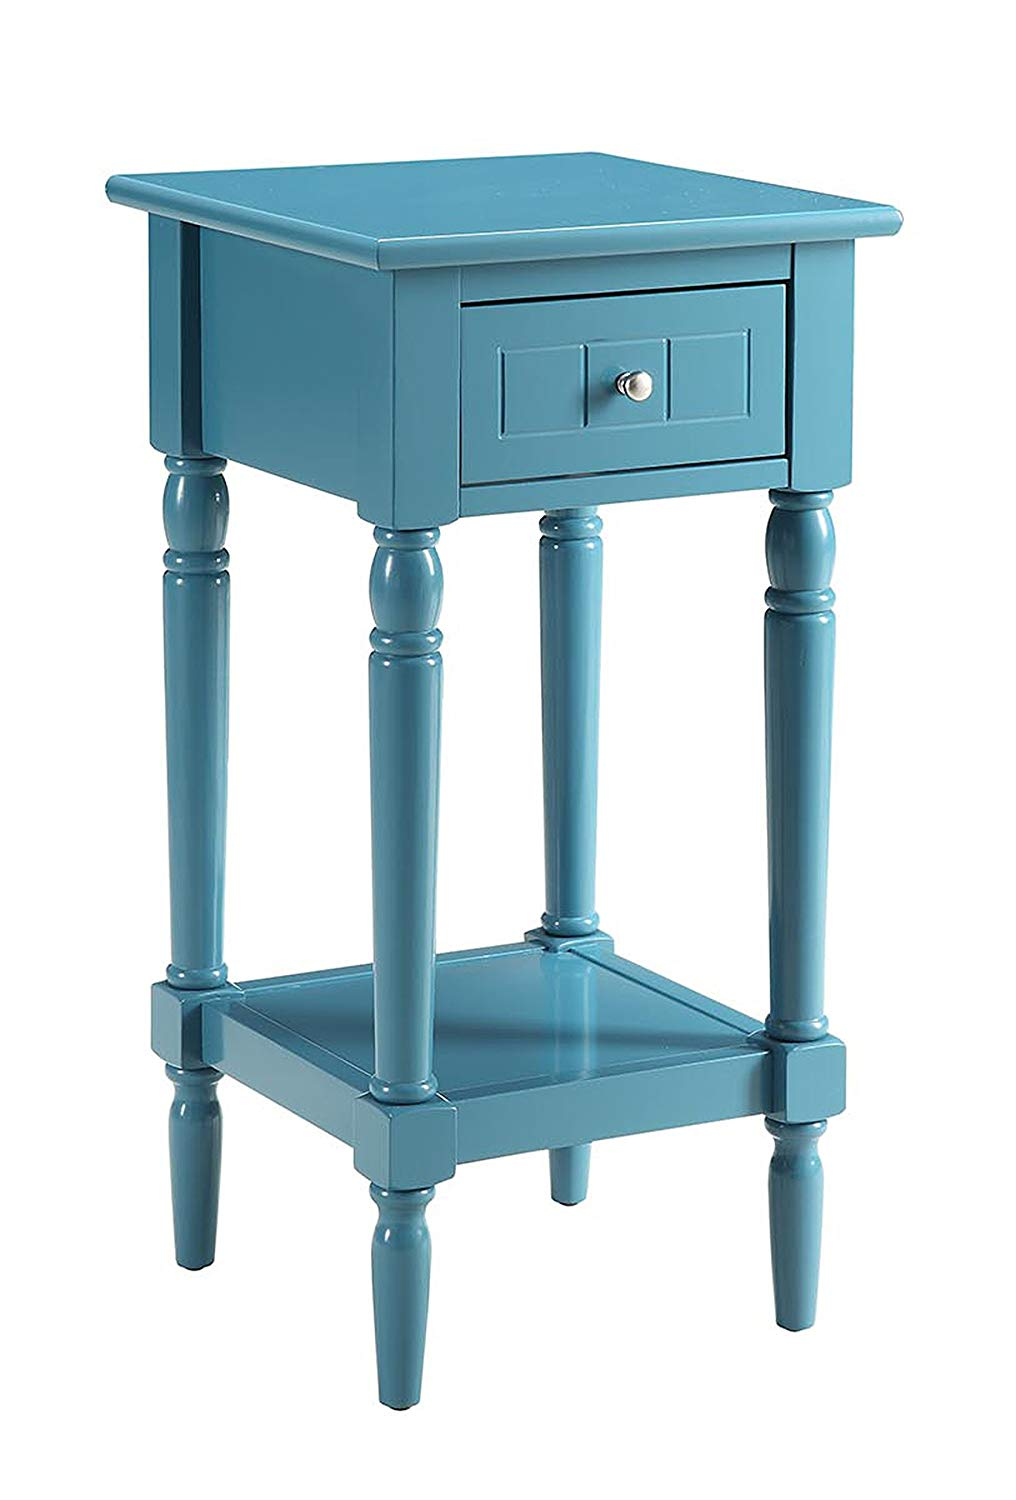 convenience concepts french country khloe accent table storage black room essentials blue kitchen dining bedside dresser factory direct furniture breakfast with stools toronto